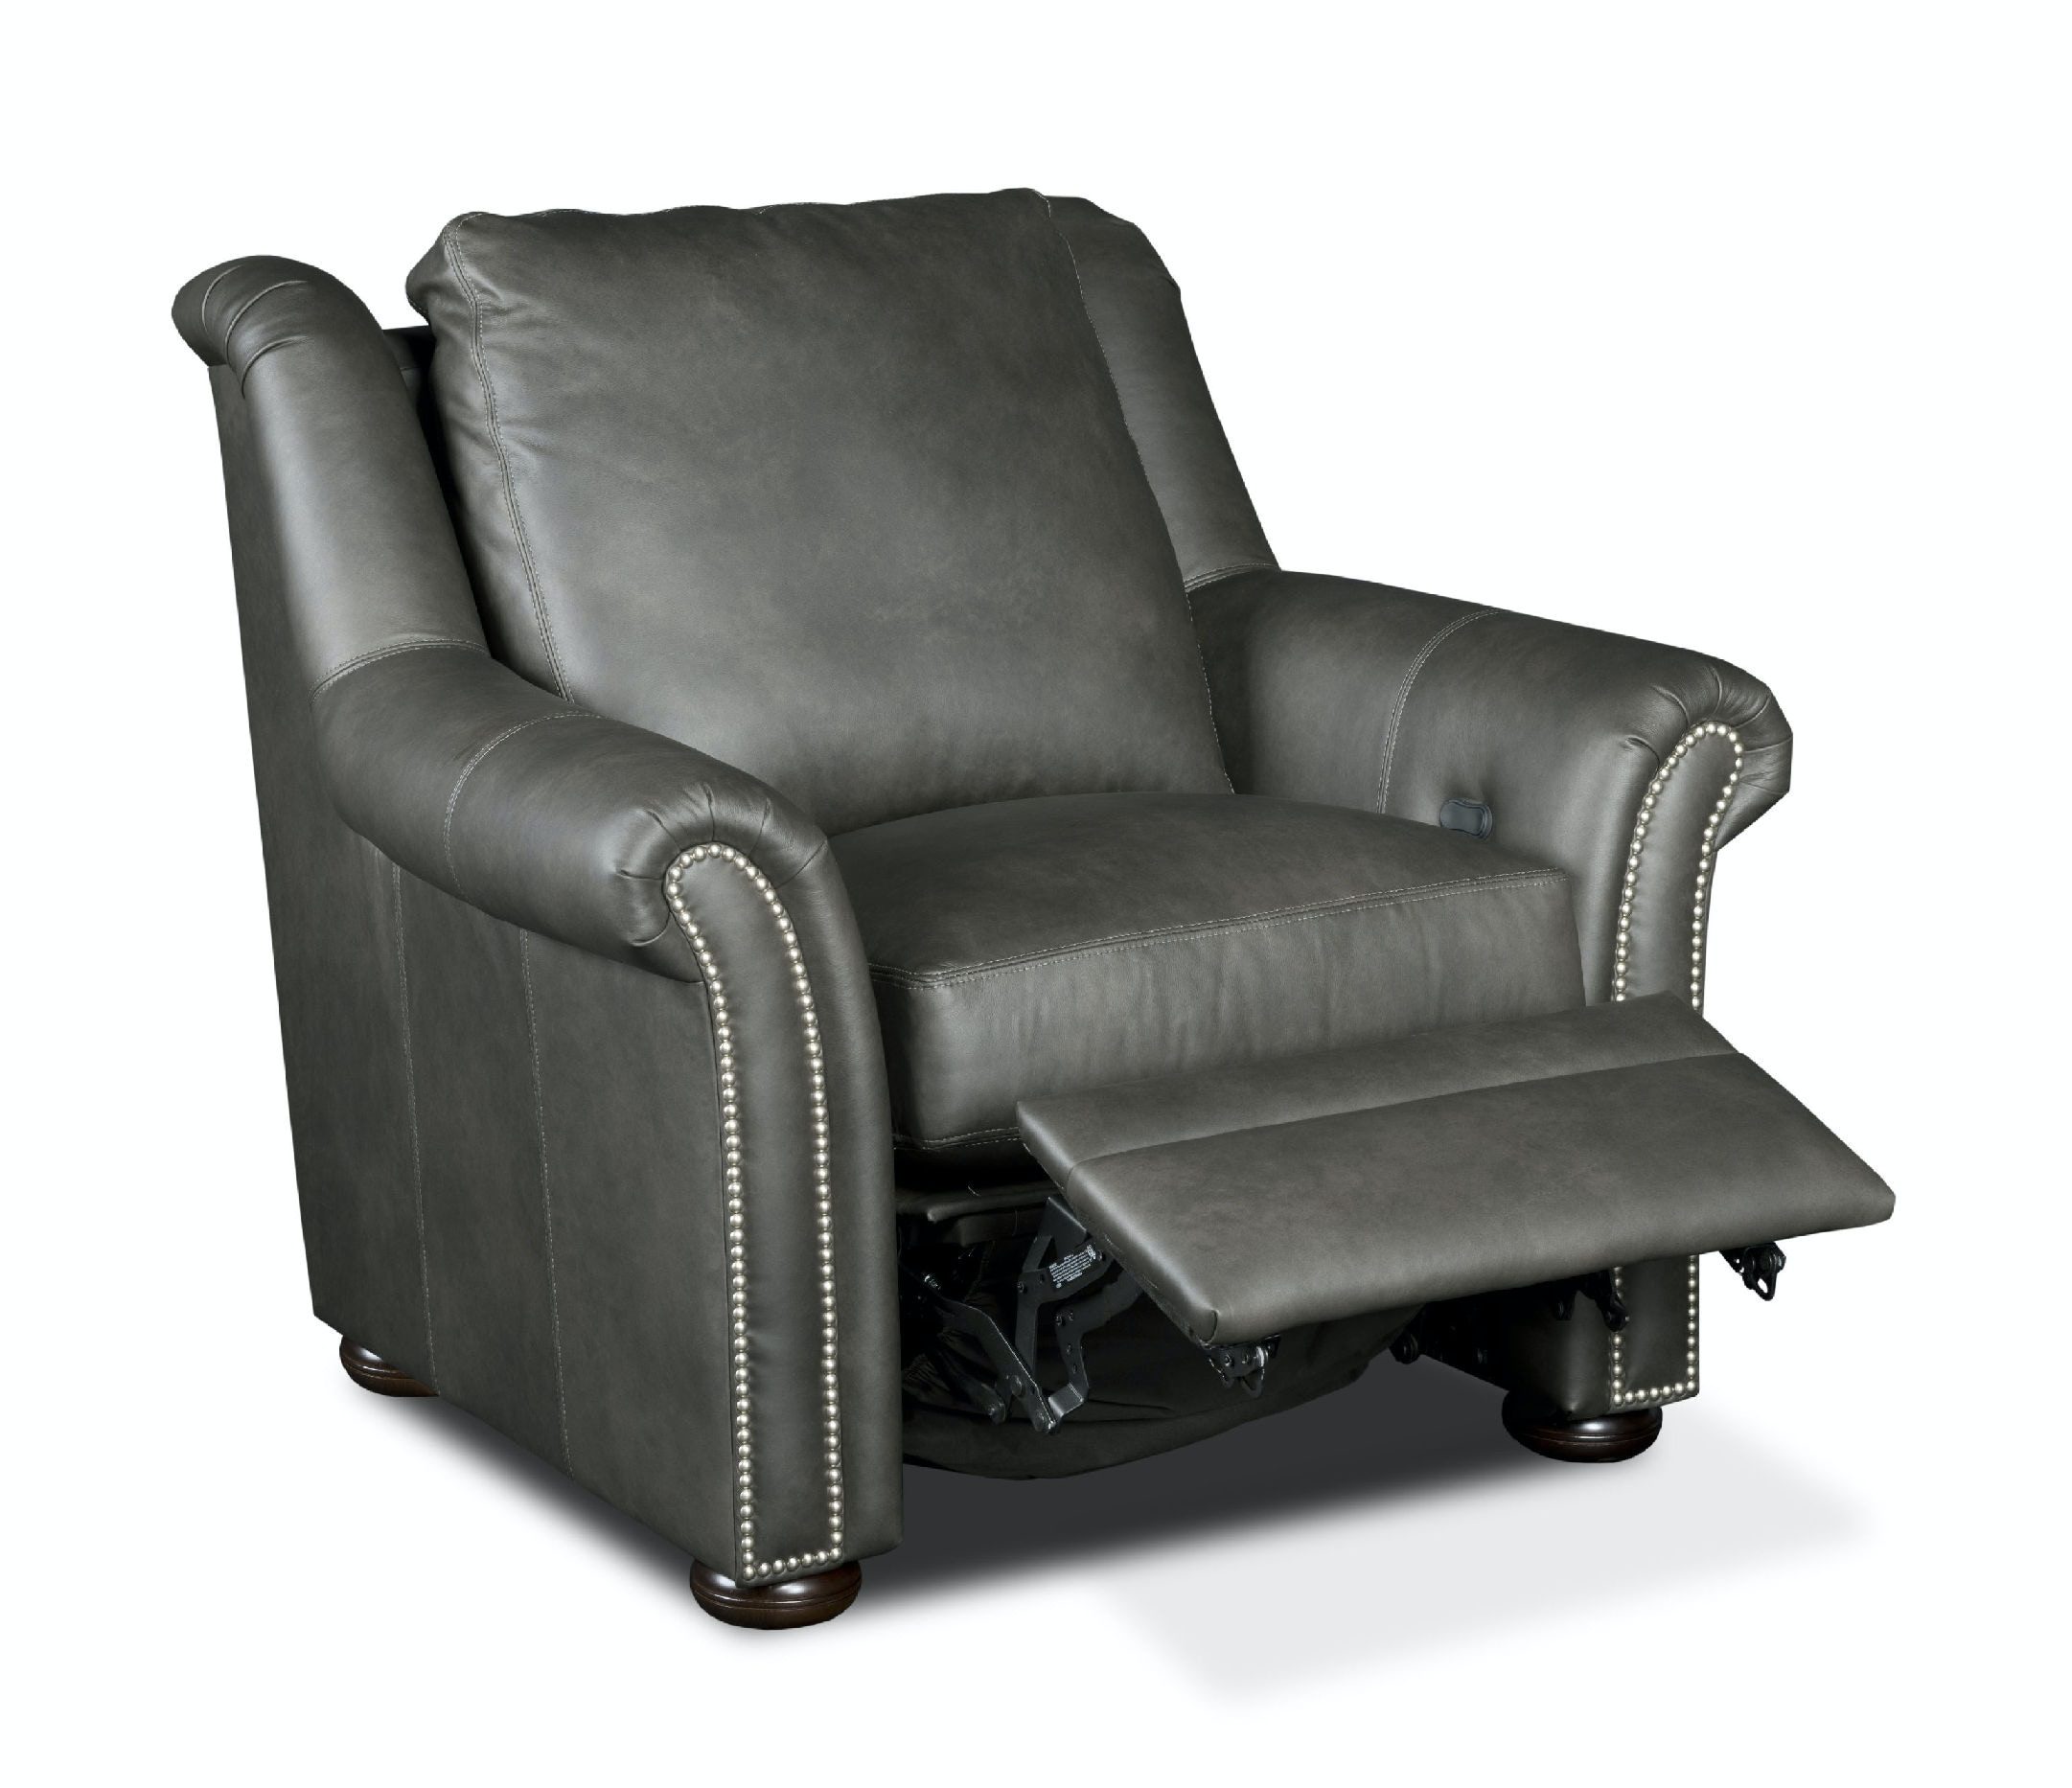 Bradington-Young Leather Power Reclining Chair 916-35  sc 1 st  Simonu0027s Furniture : leather power recliner chair - islam-shia.org